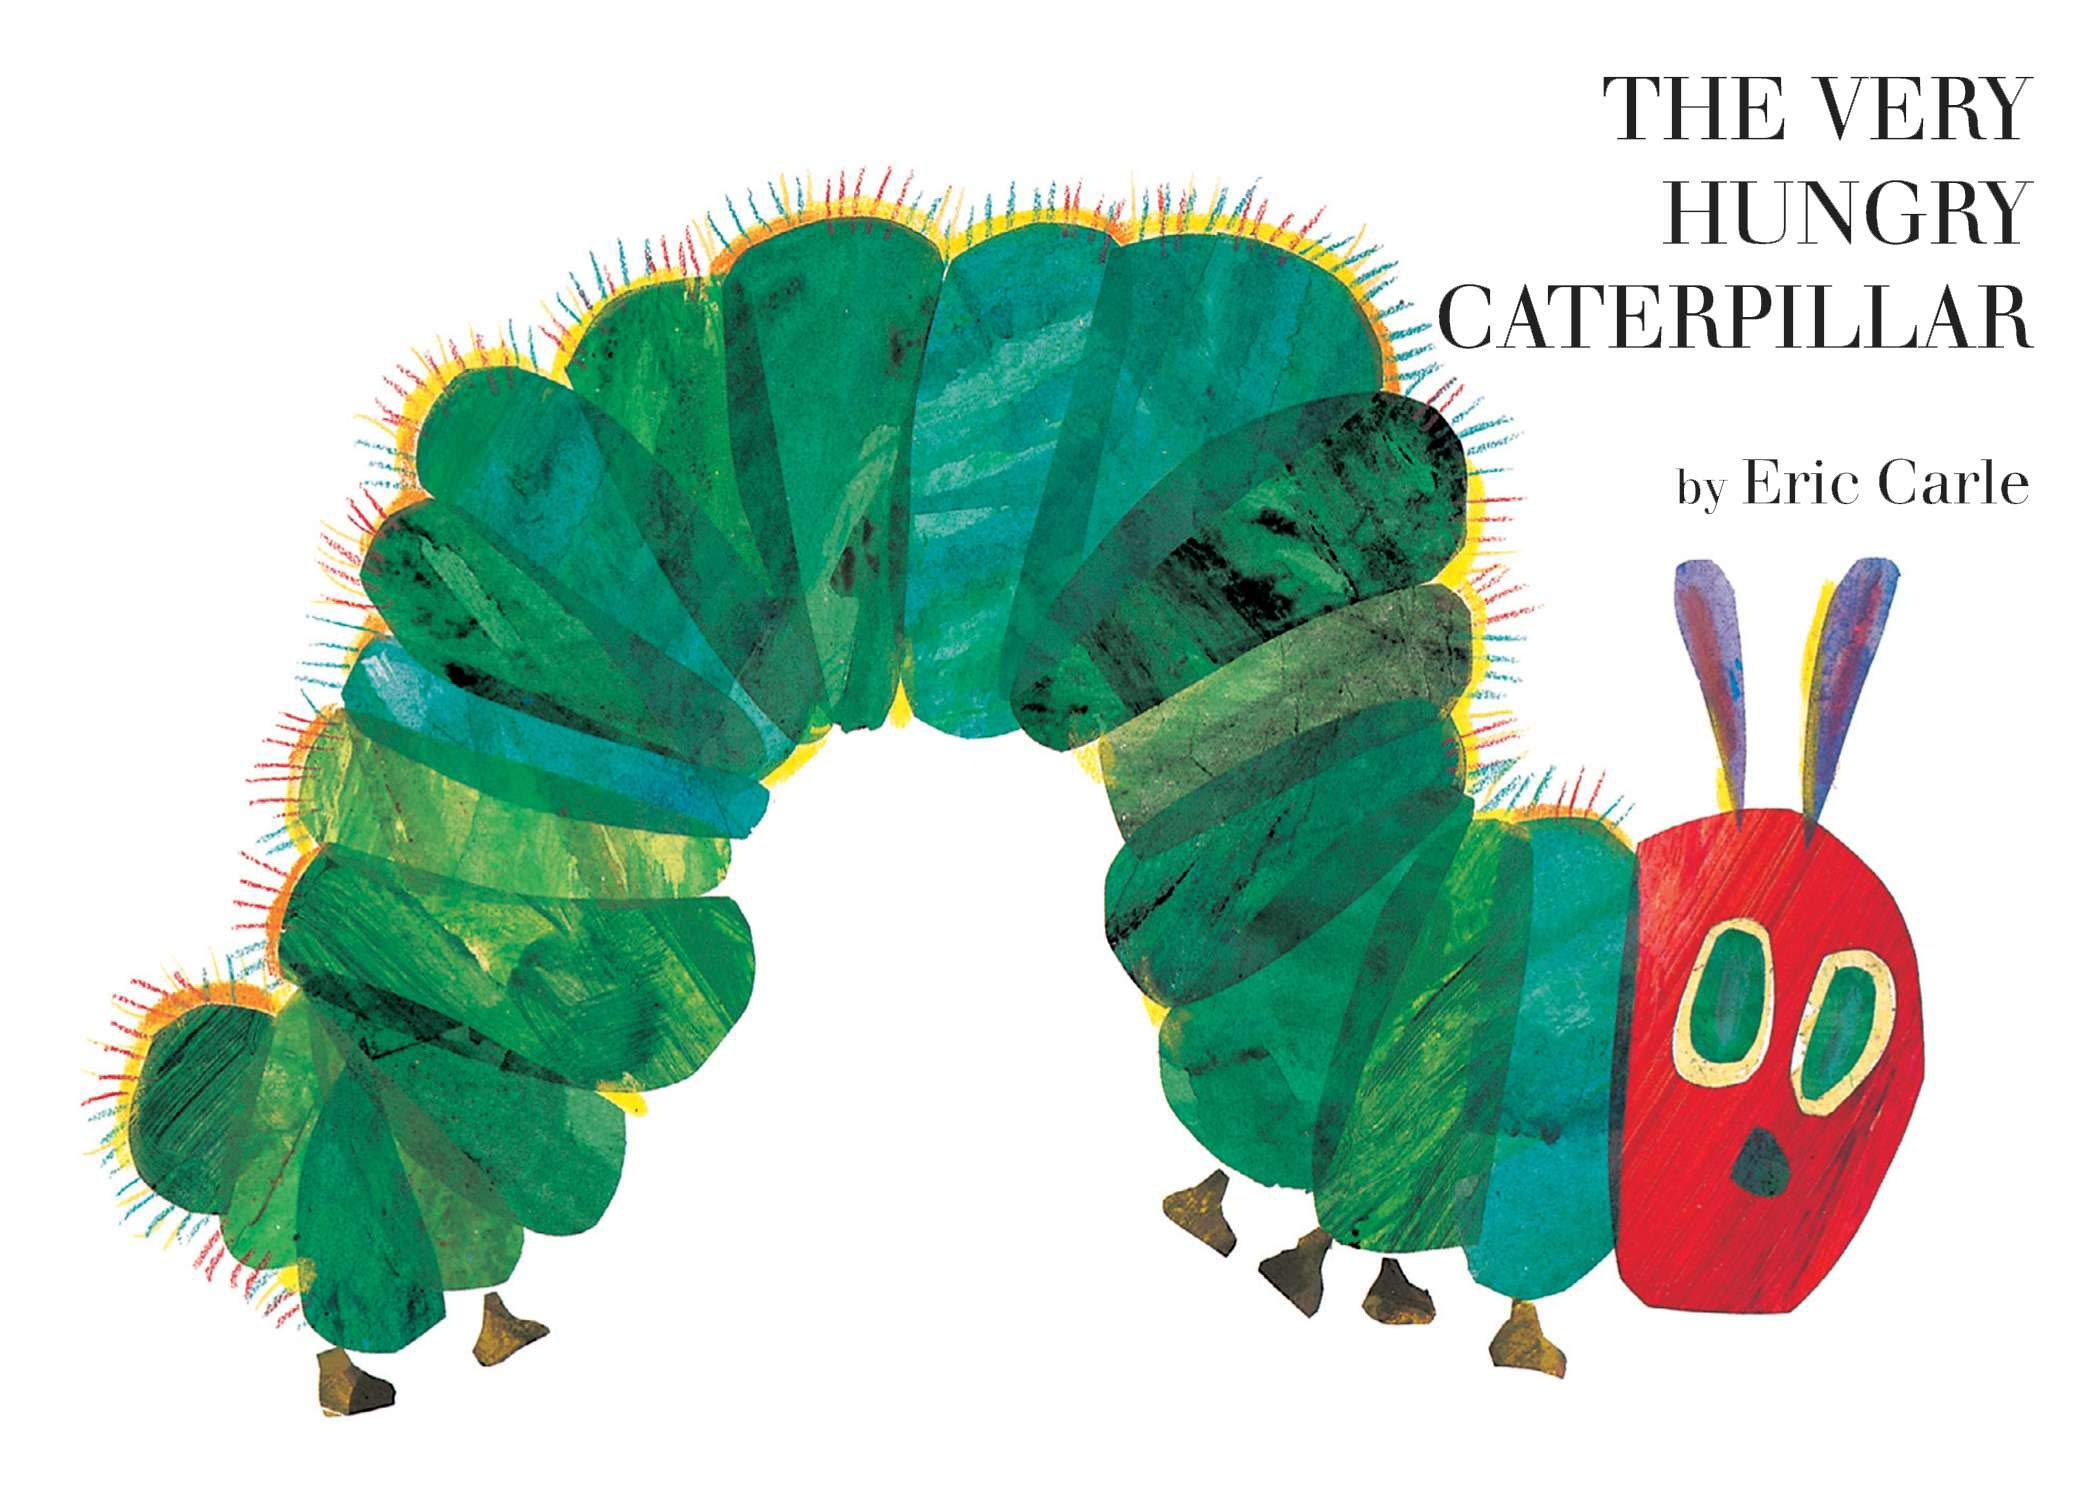 image of The Very Hungry Caterpillar Book Cover by Eric Carle